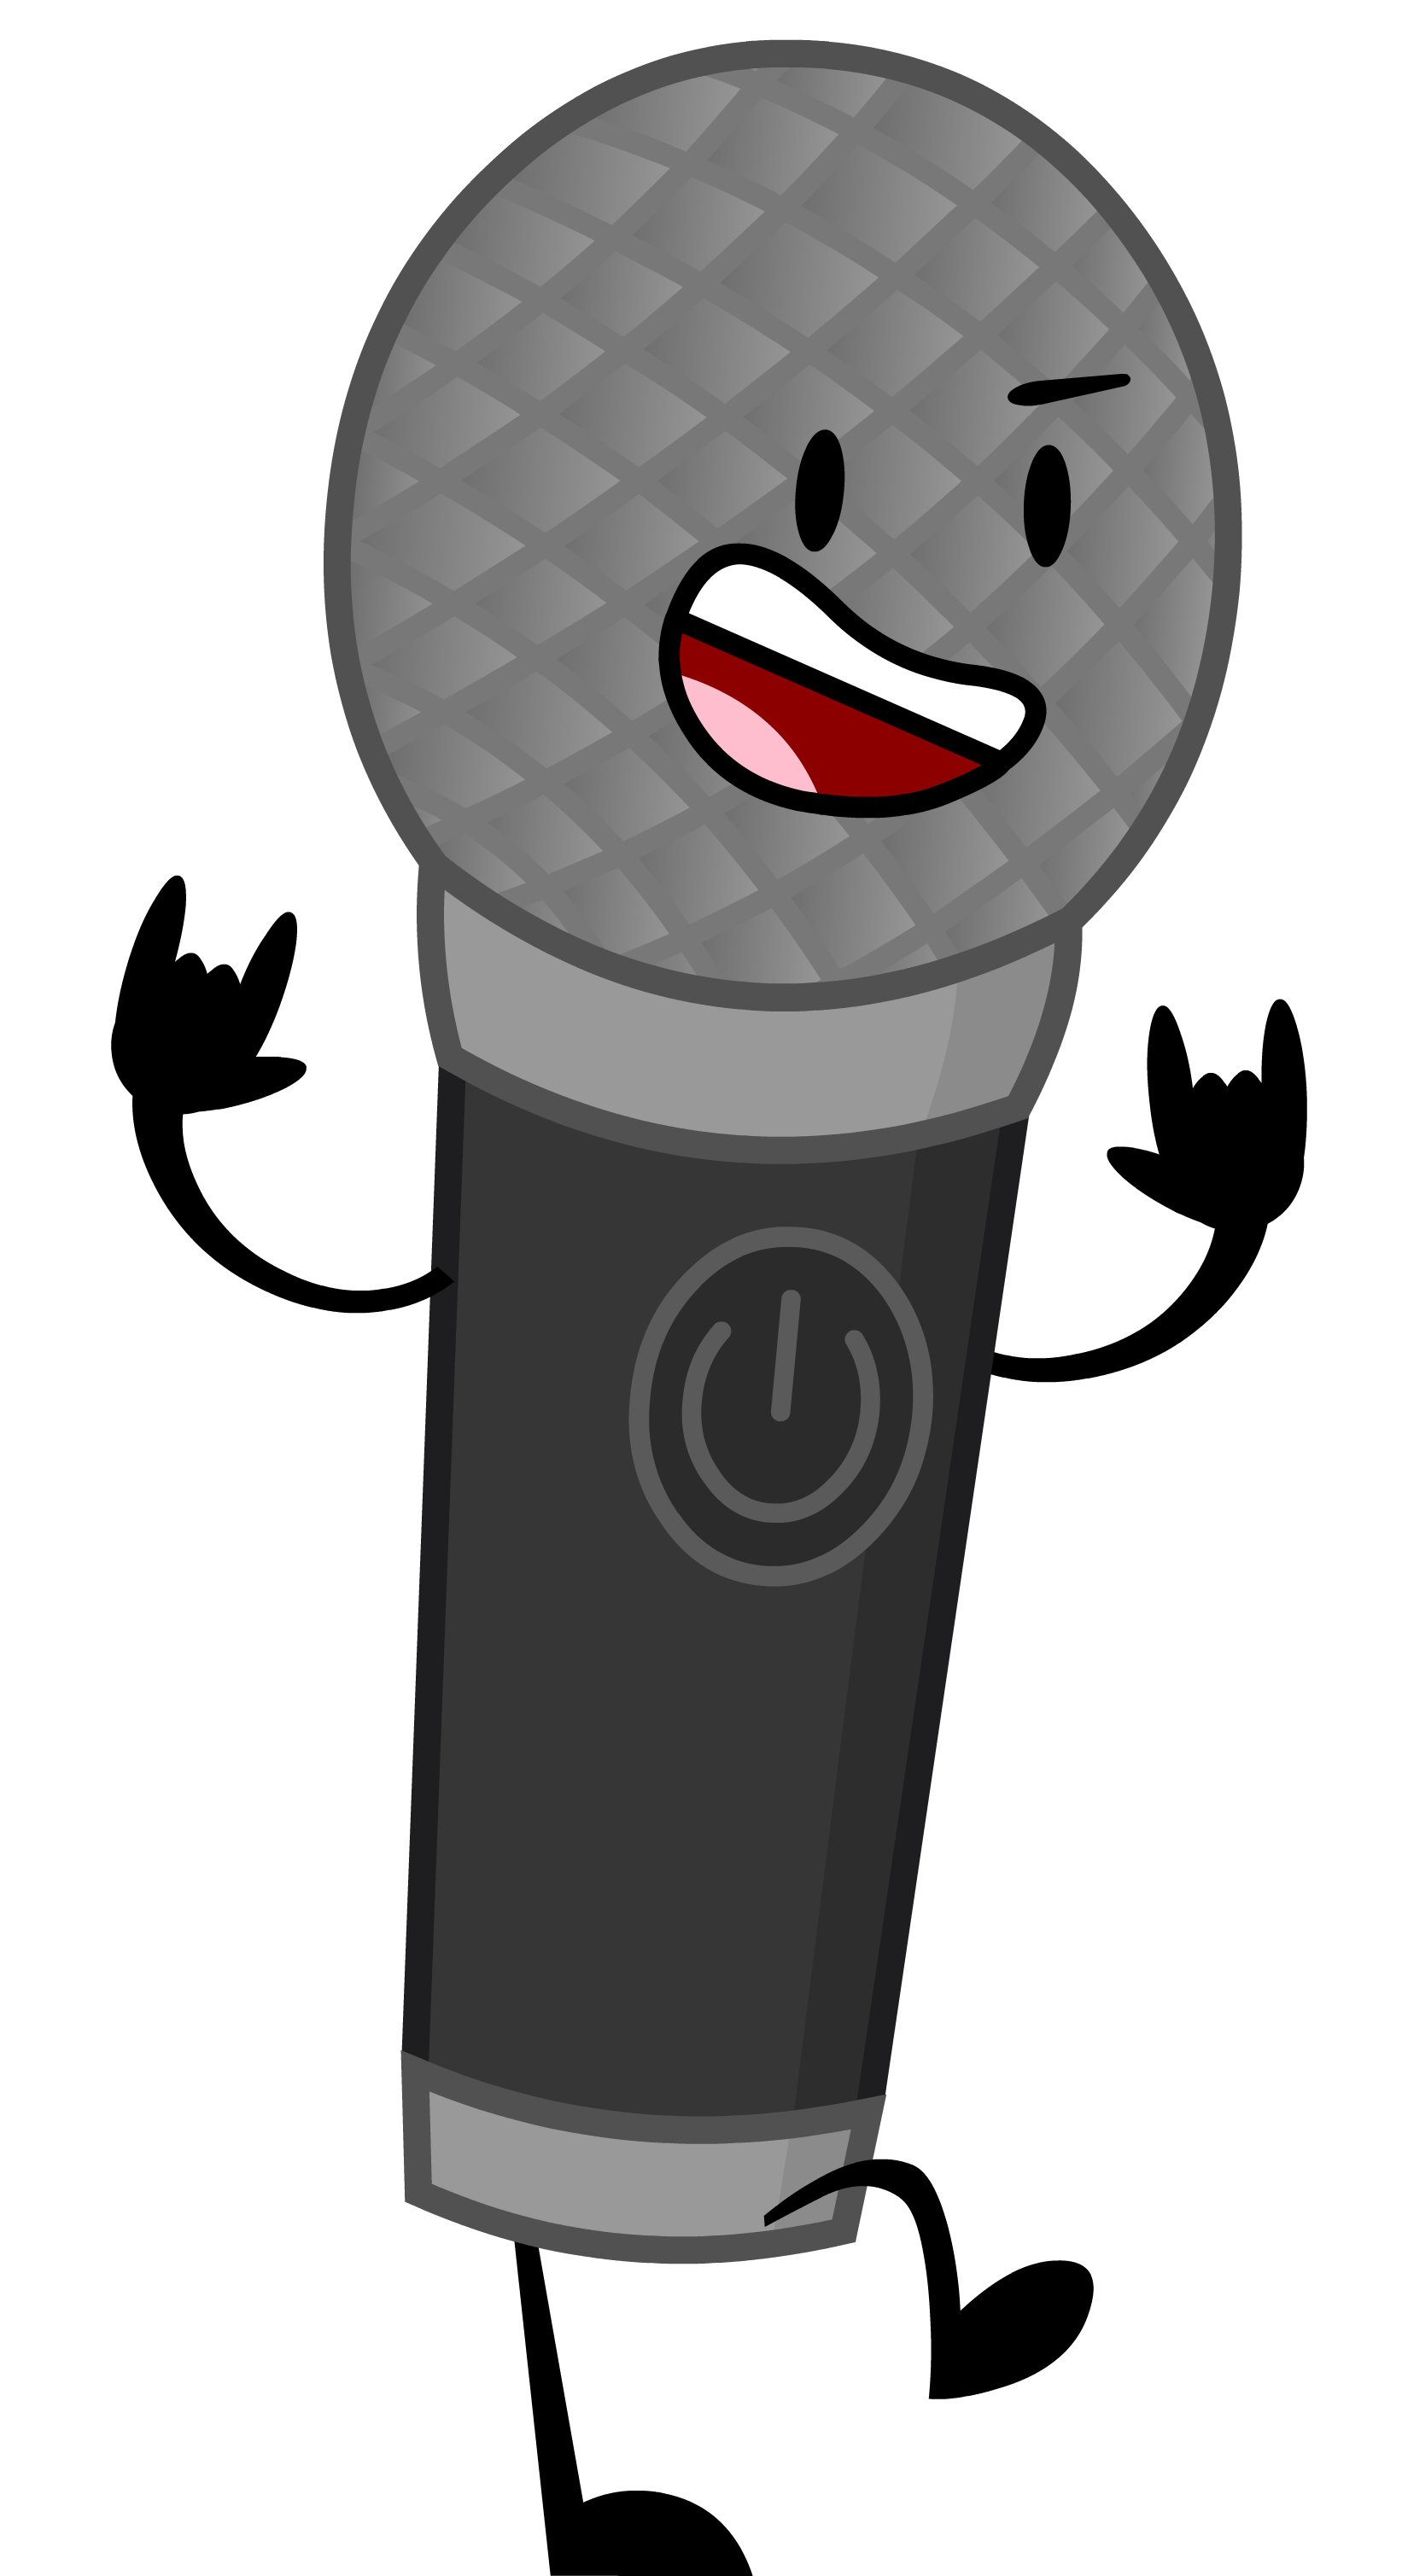 Microphone clipart voice actor. Inanimate insanity wiki fandom